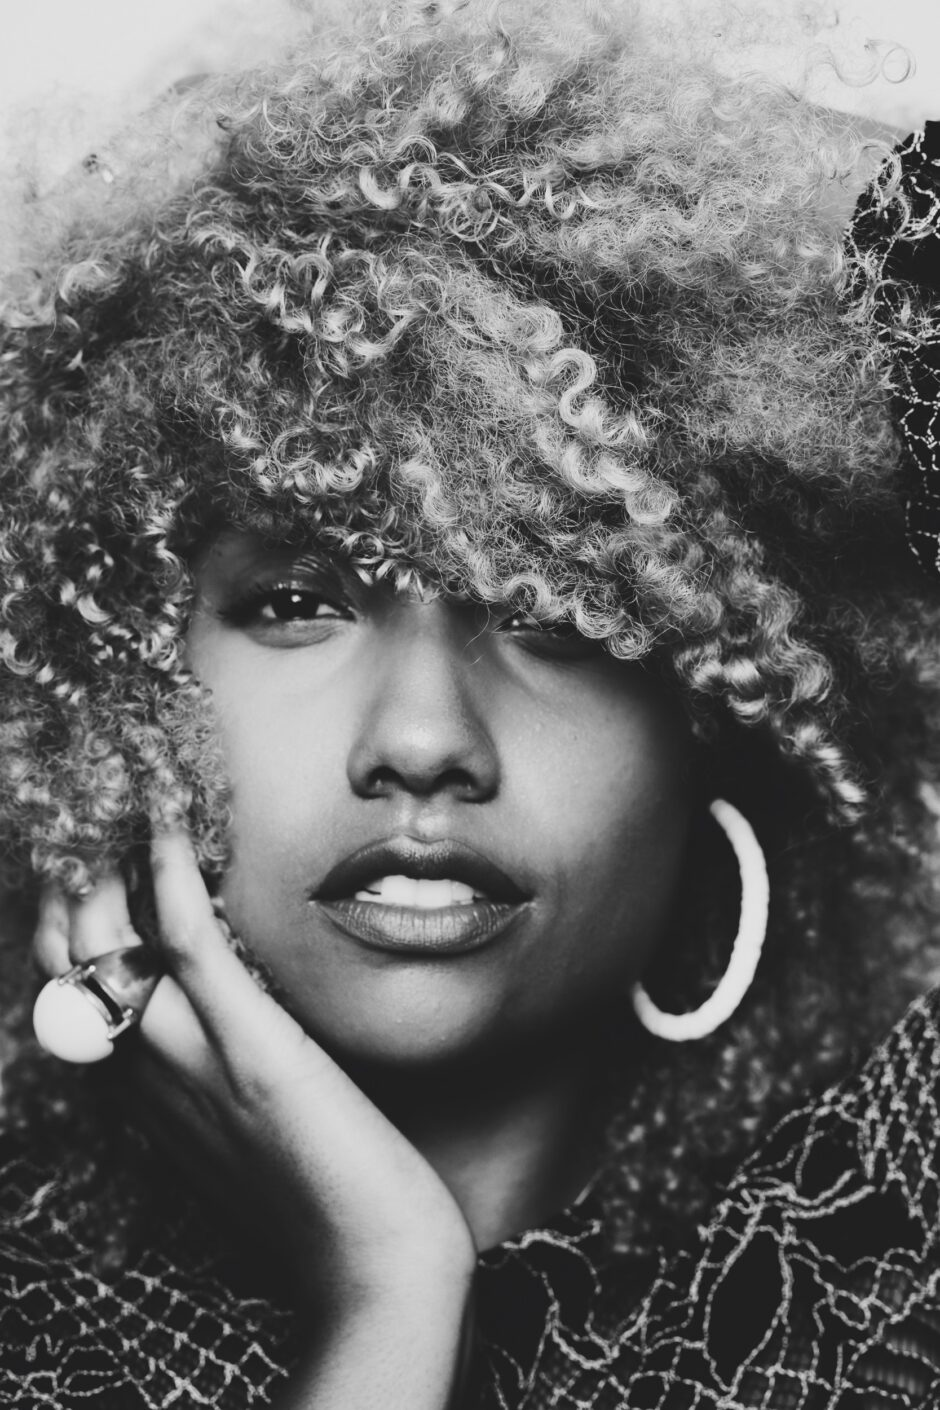 kenisha gill photography-melissa goodwin-live clothes miinded-wear who you are-black and white portrait-fd photo studio